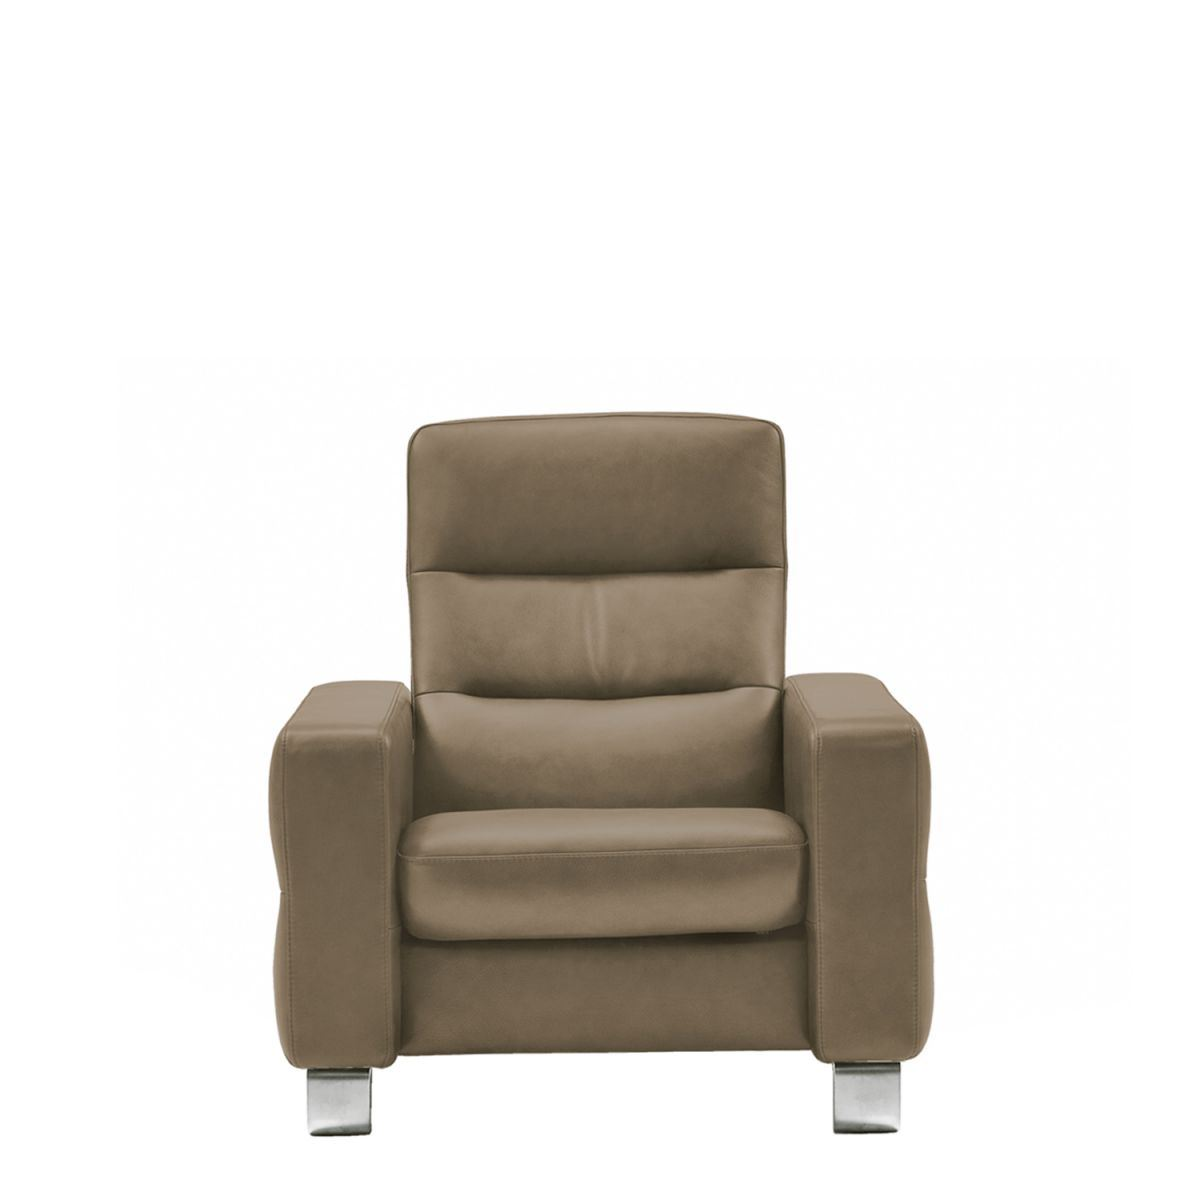 Stressless Wave Sofa Reviews Stressless Wave Arm Chair Inspiration Furniture